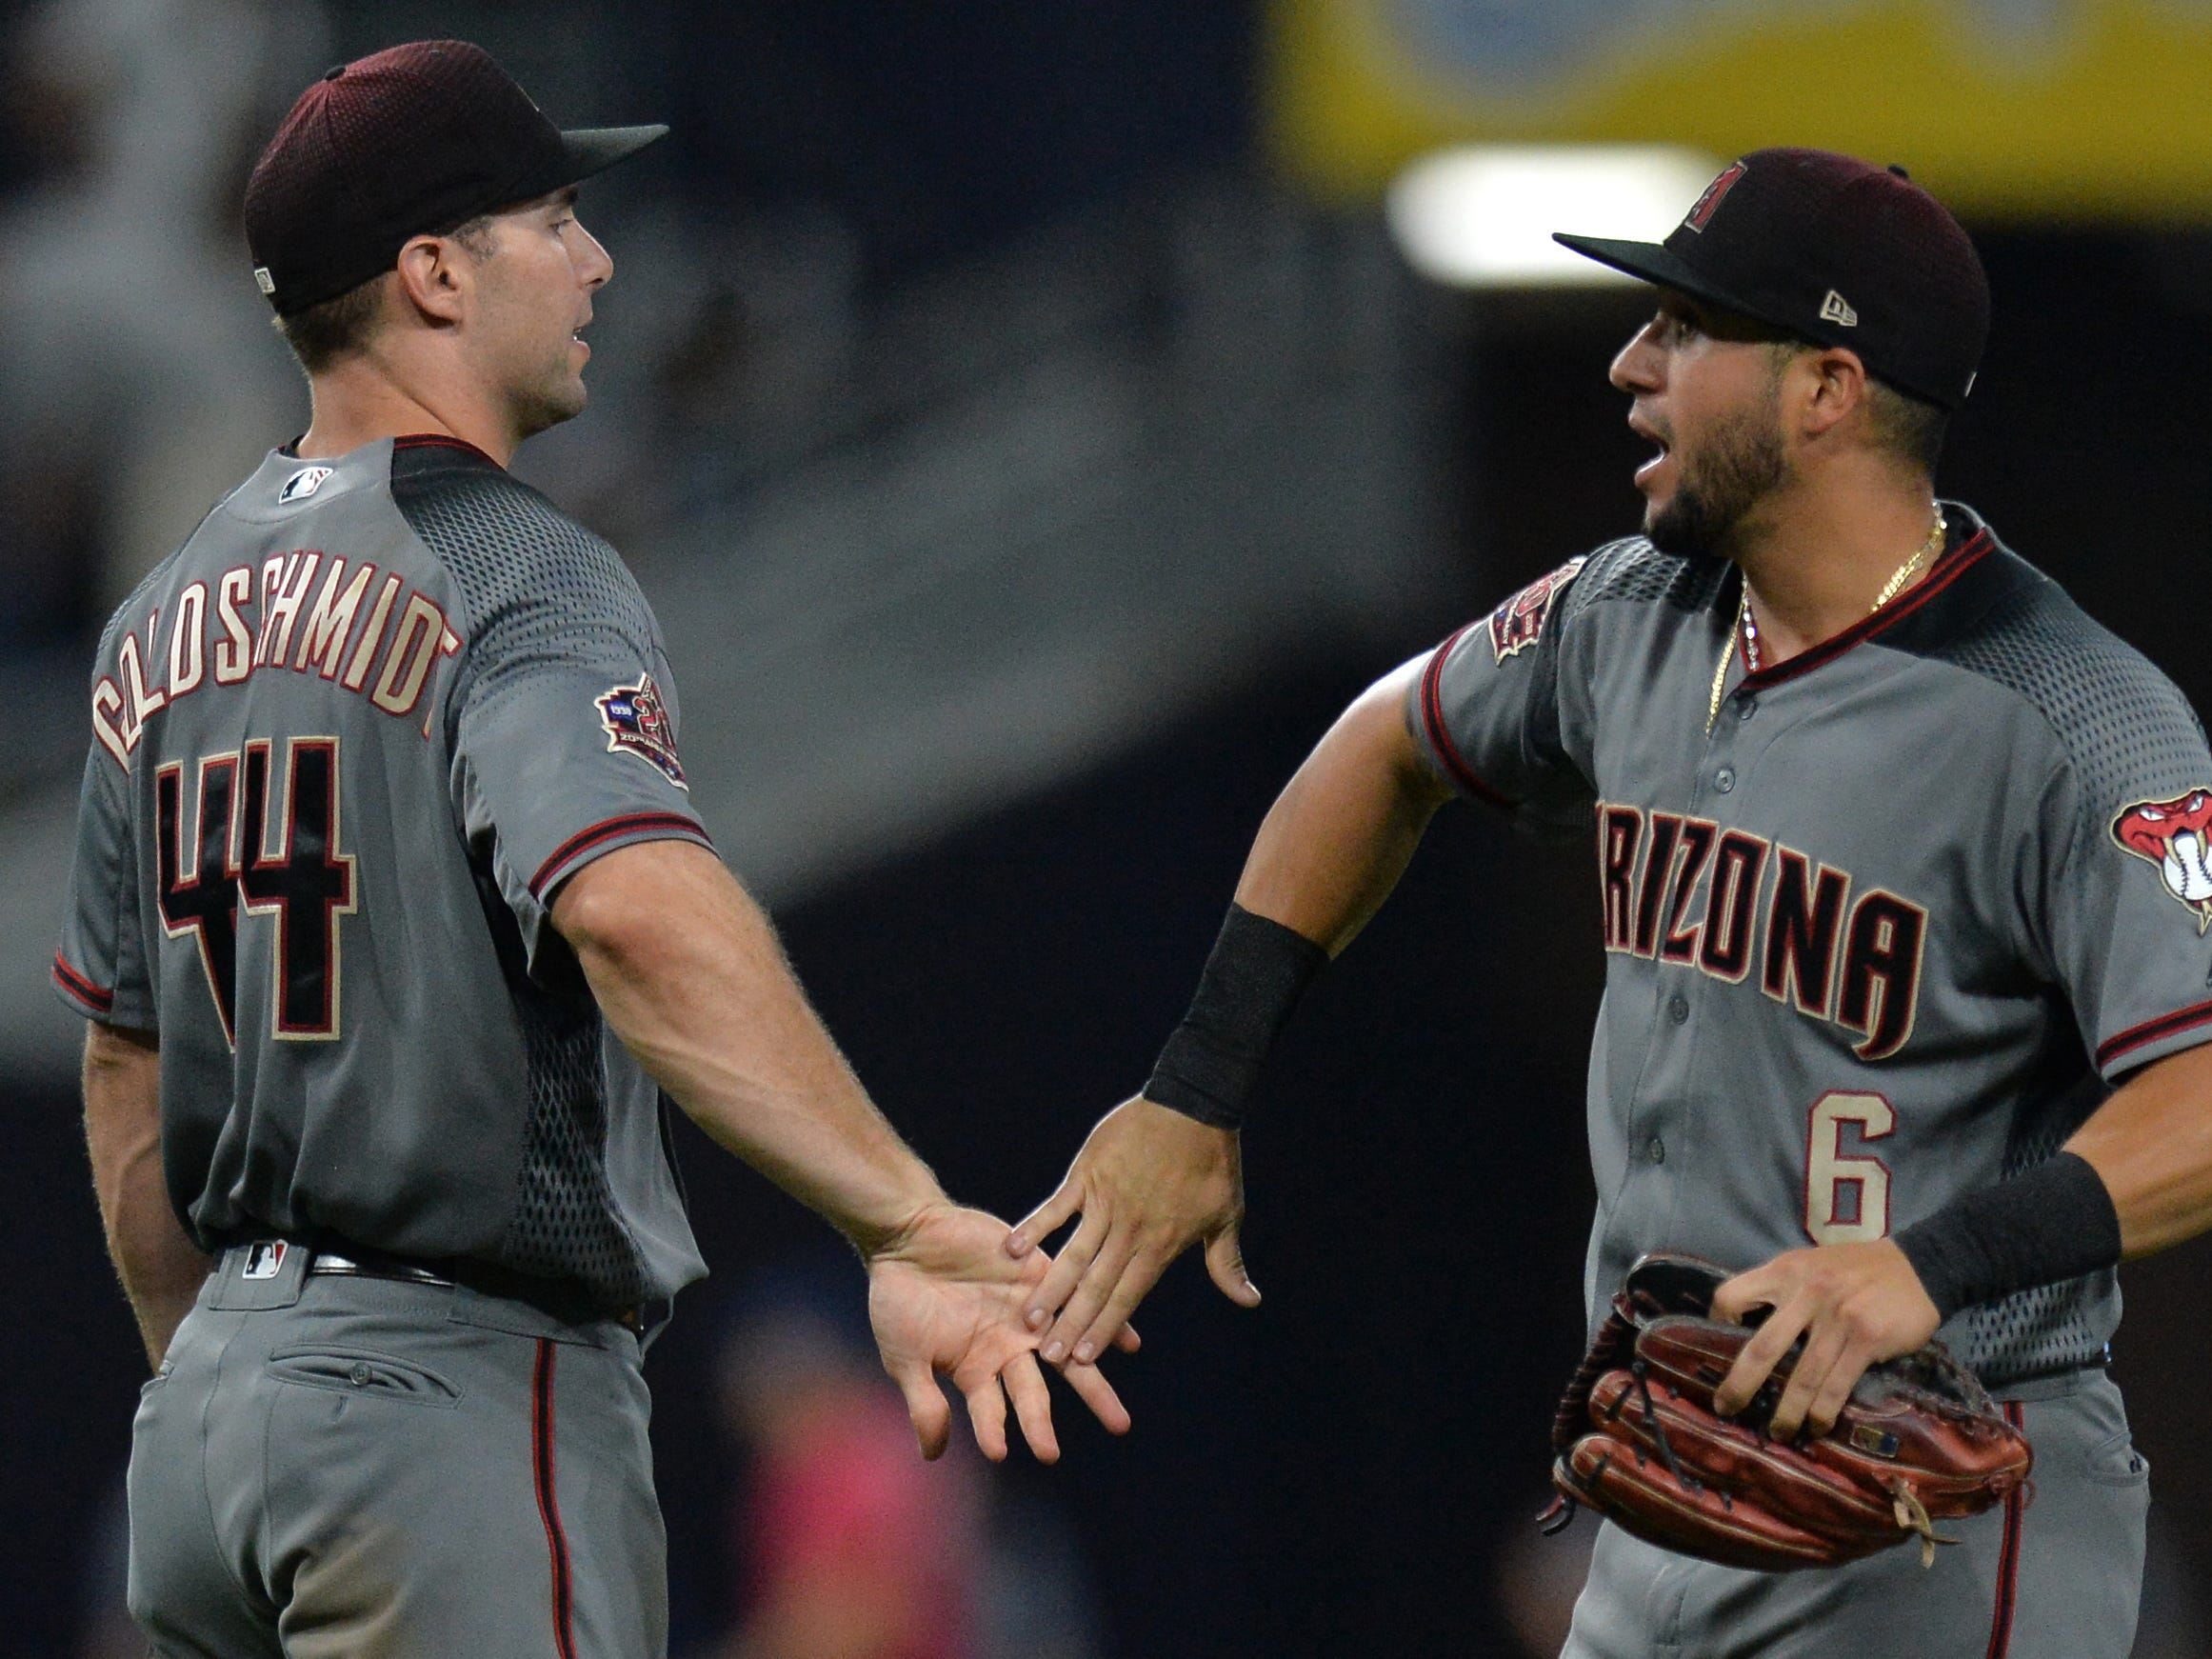 Aug 16, 2018; San Diego, CA, USA; Arizona Diamondbacks first baseman Paul Goldschmidt (44) and left fielder David Peralta (6) celebrate a 5-1 win over the San Diego Padres at Petco Park.